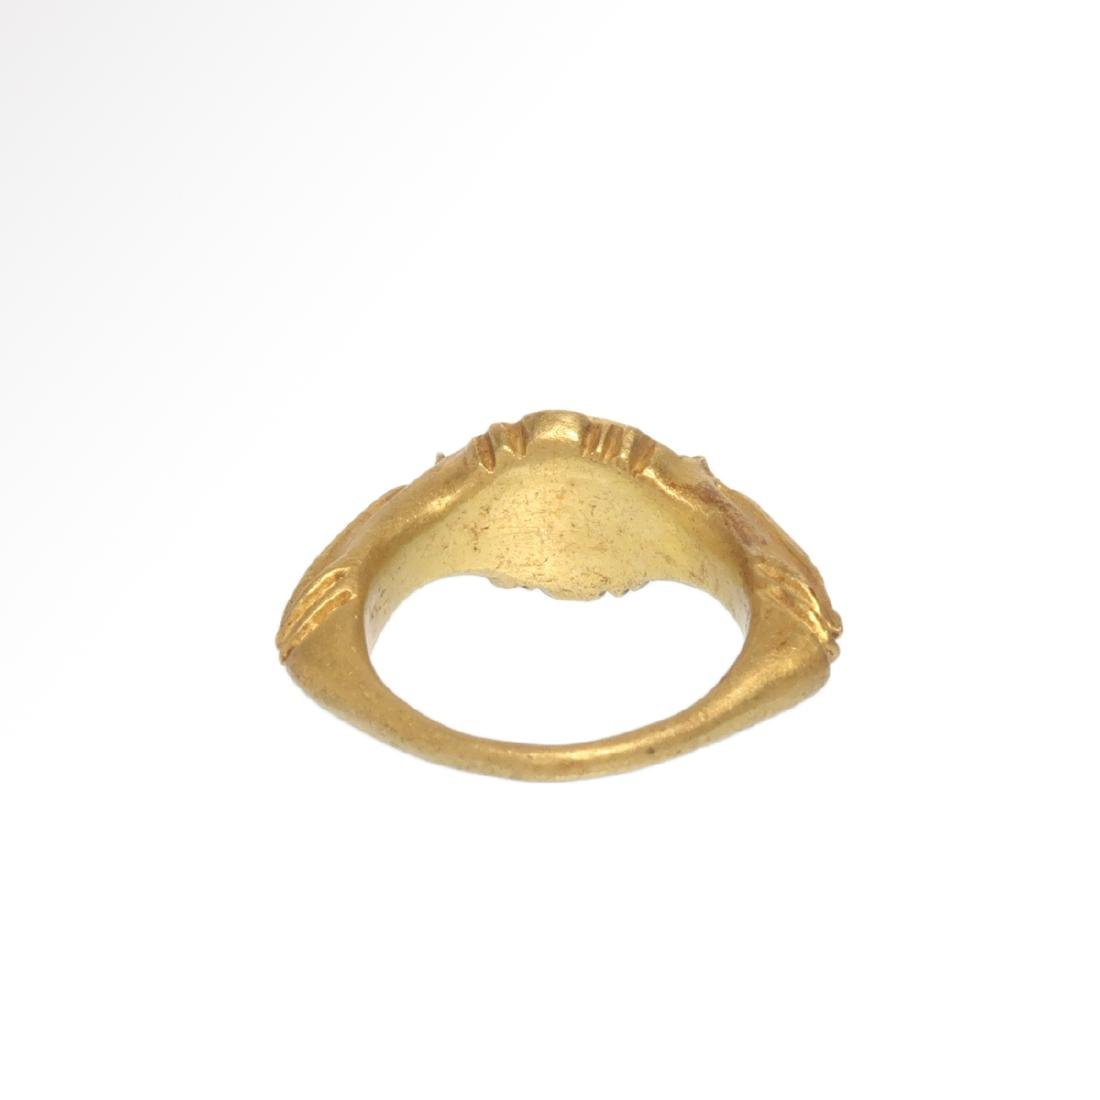 Roman Gold Ring with Cornelian Intaglio Engraved with - 6